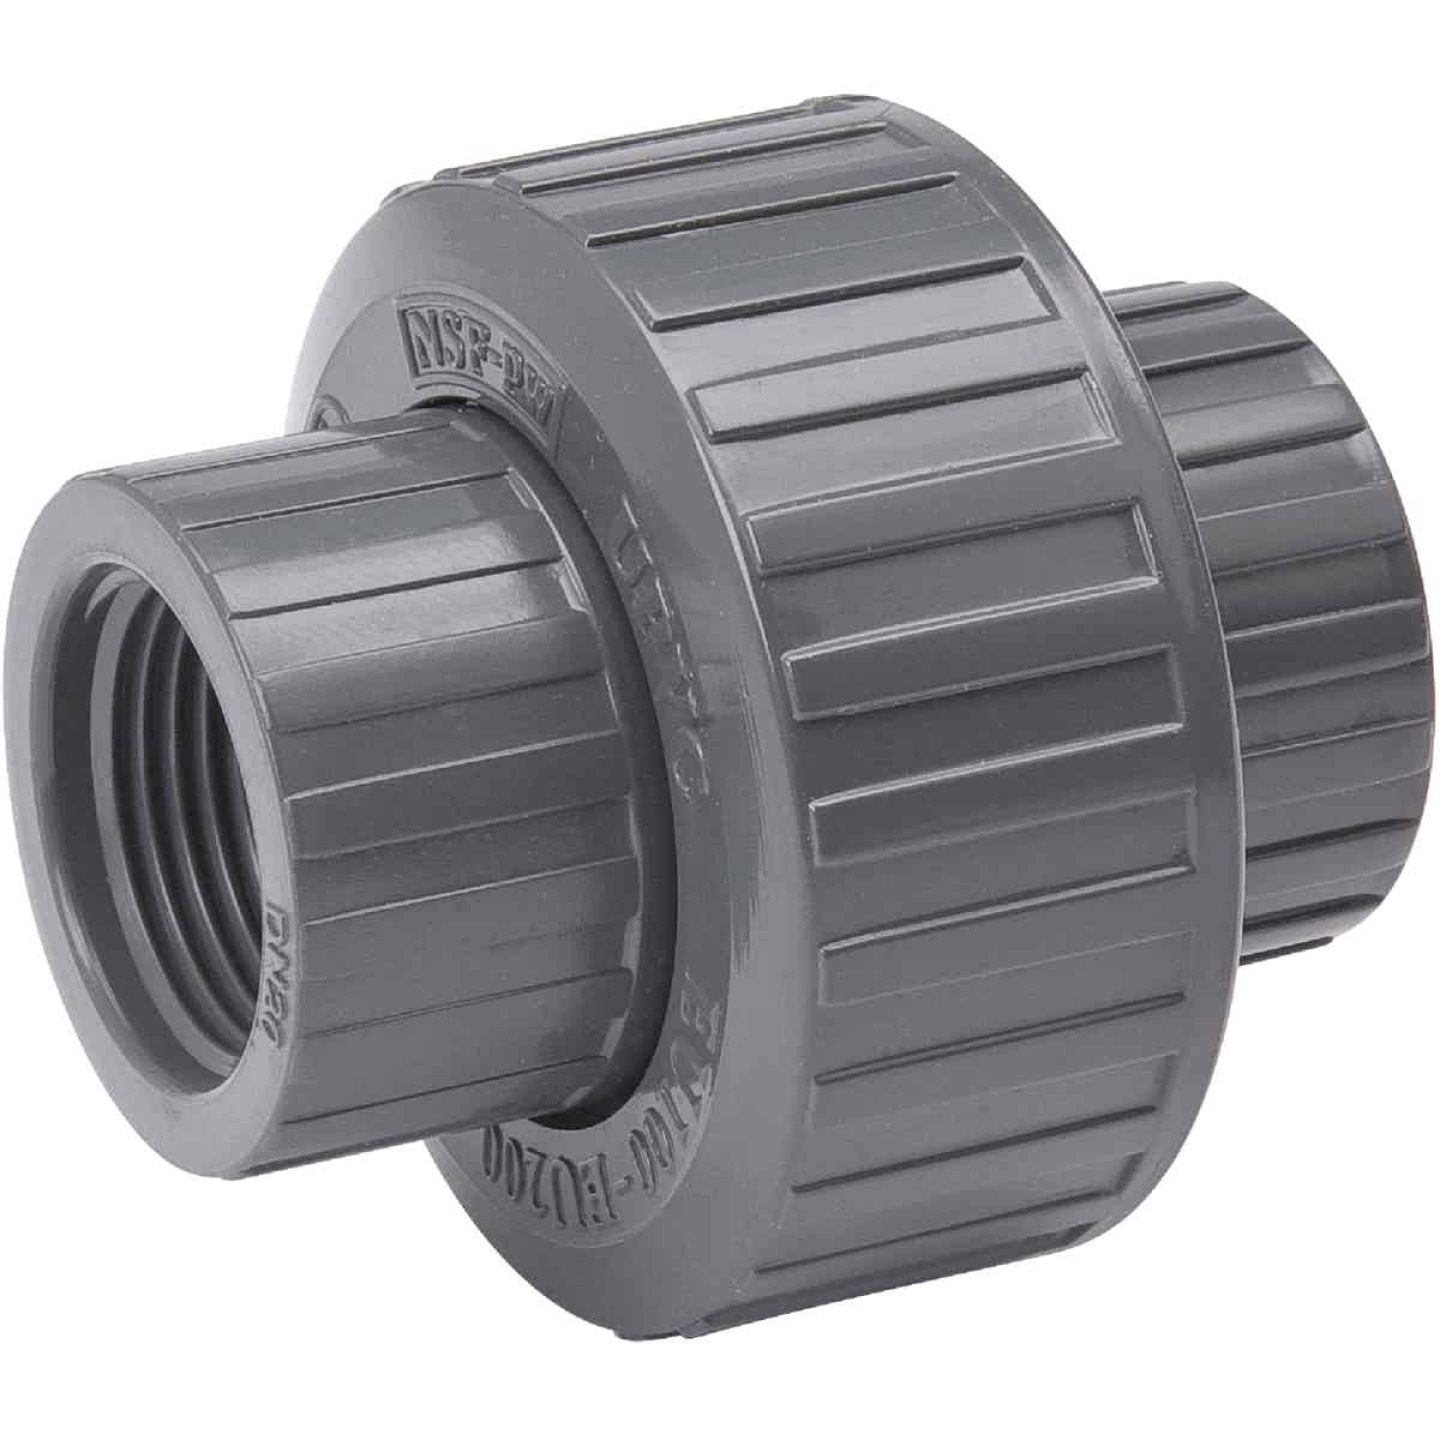 B&K 1-1/4 In. Threaded Schedule 80 PVC Union Image 1